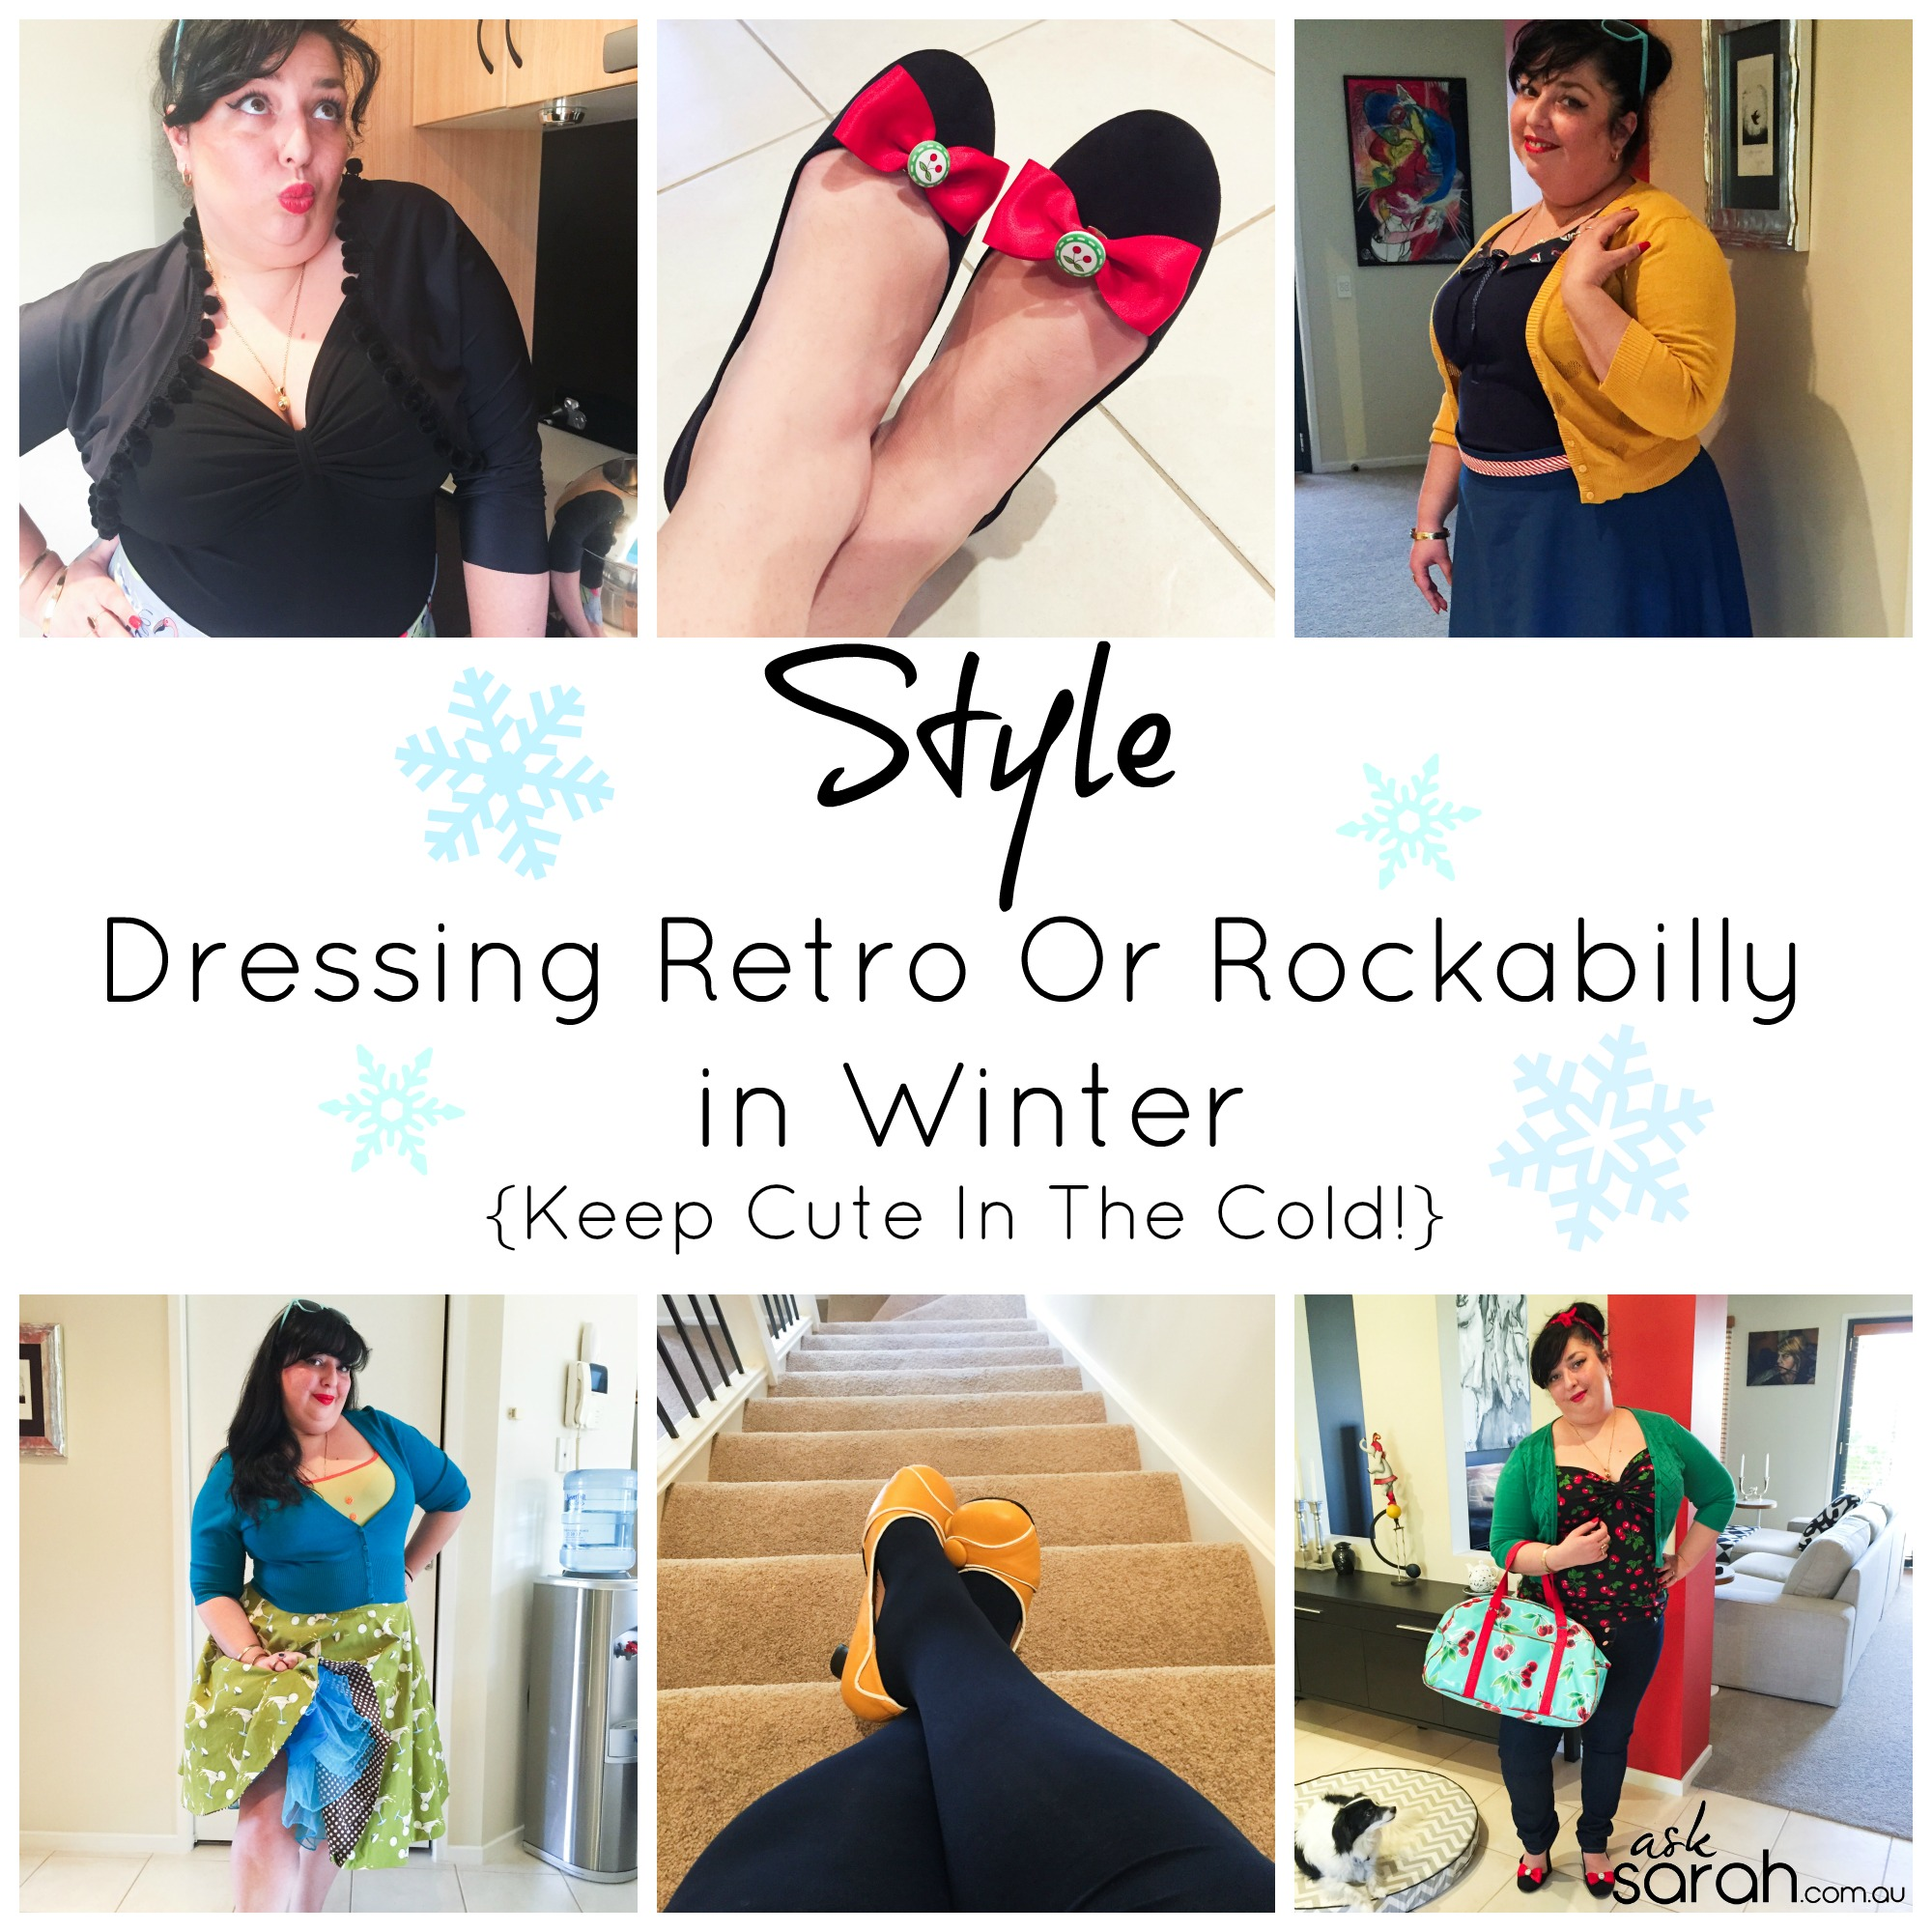 Style: Dressing Retro Or Rockabilly in Winter {Keep Cute In The Cold!}